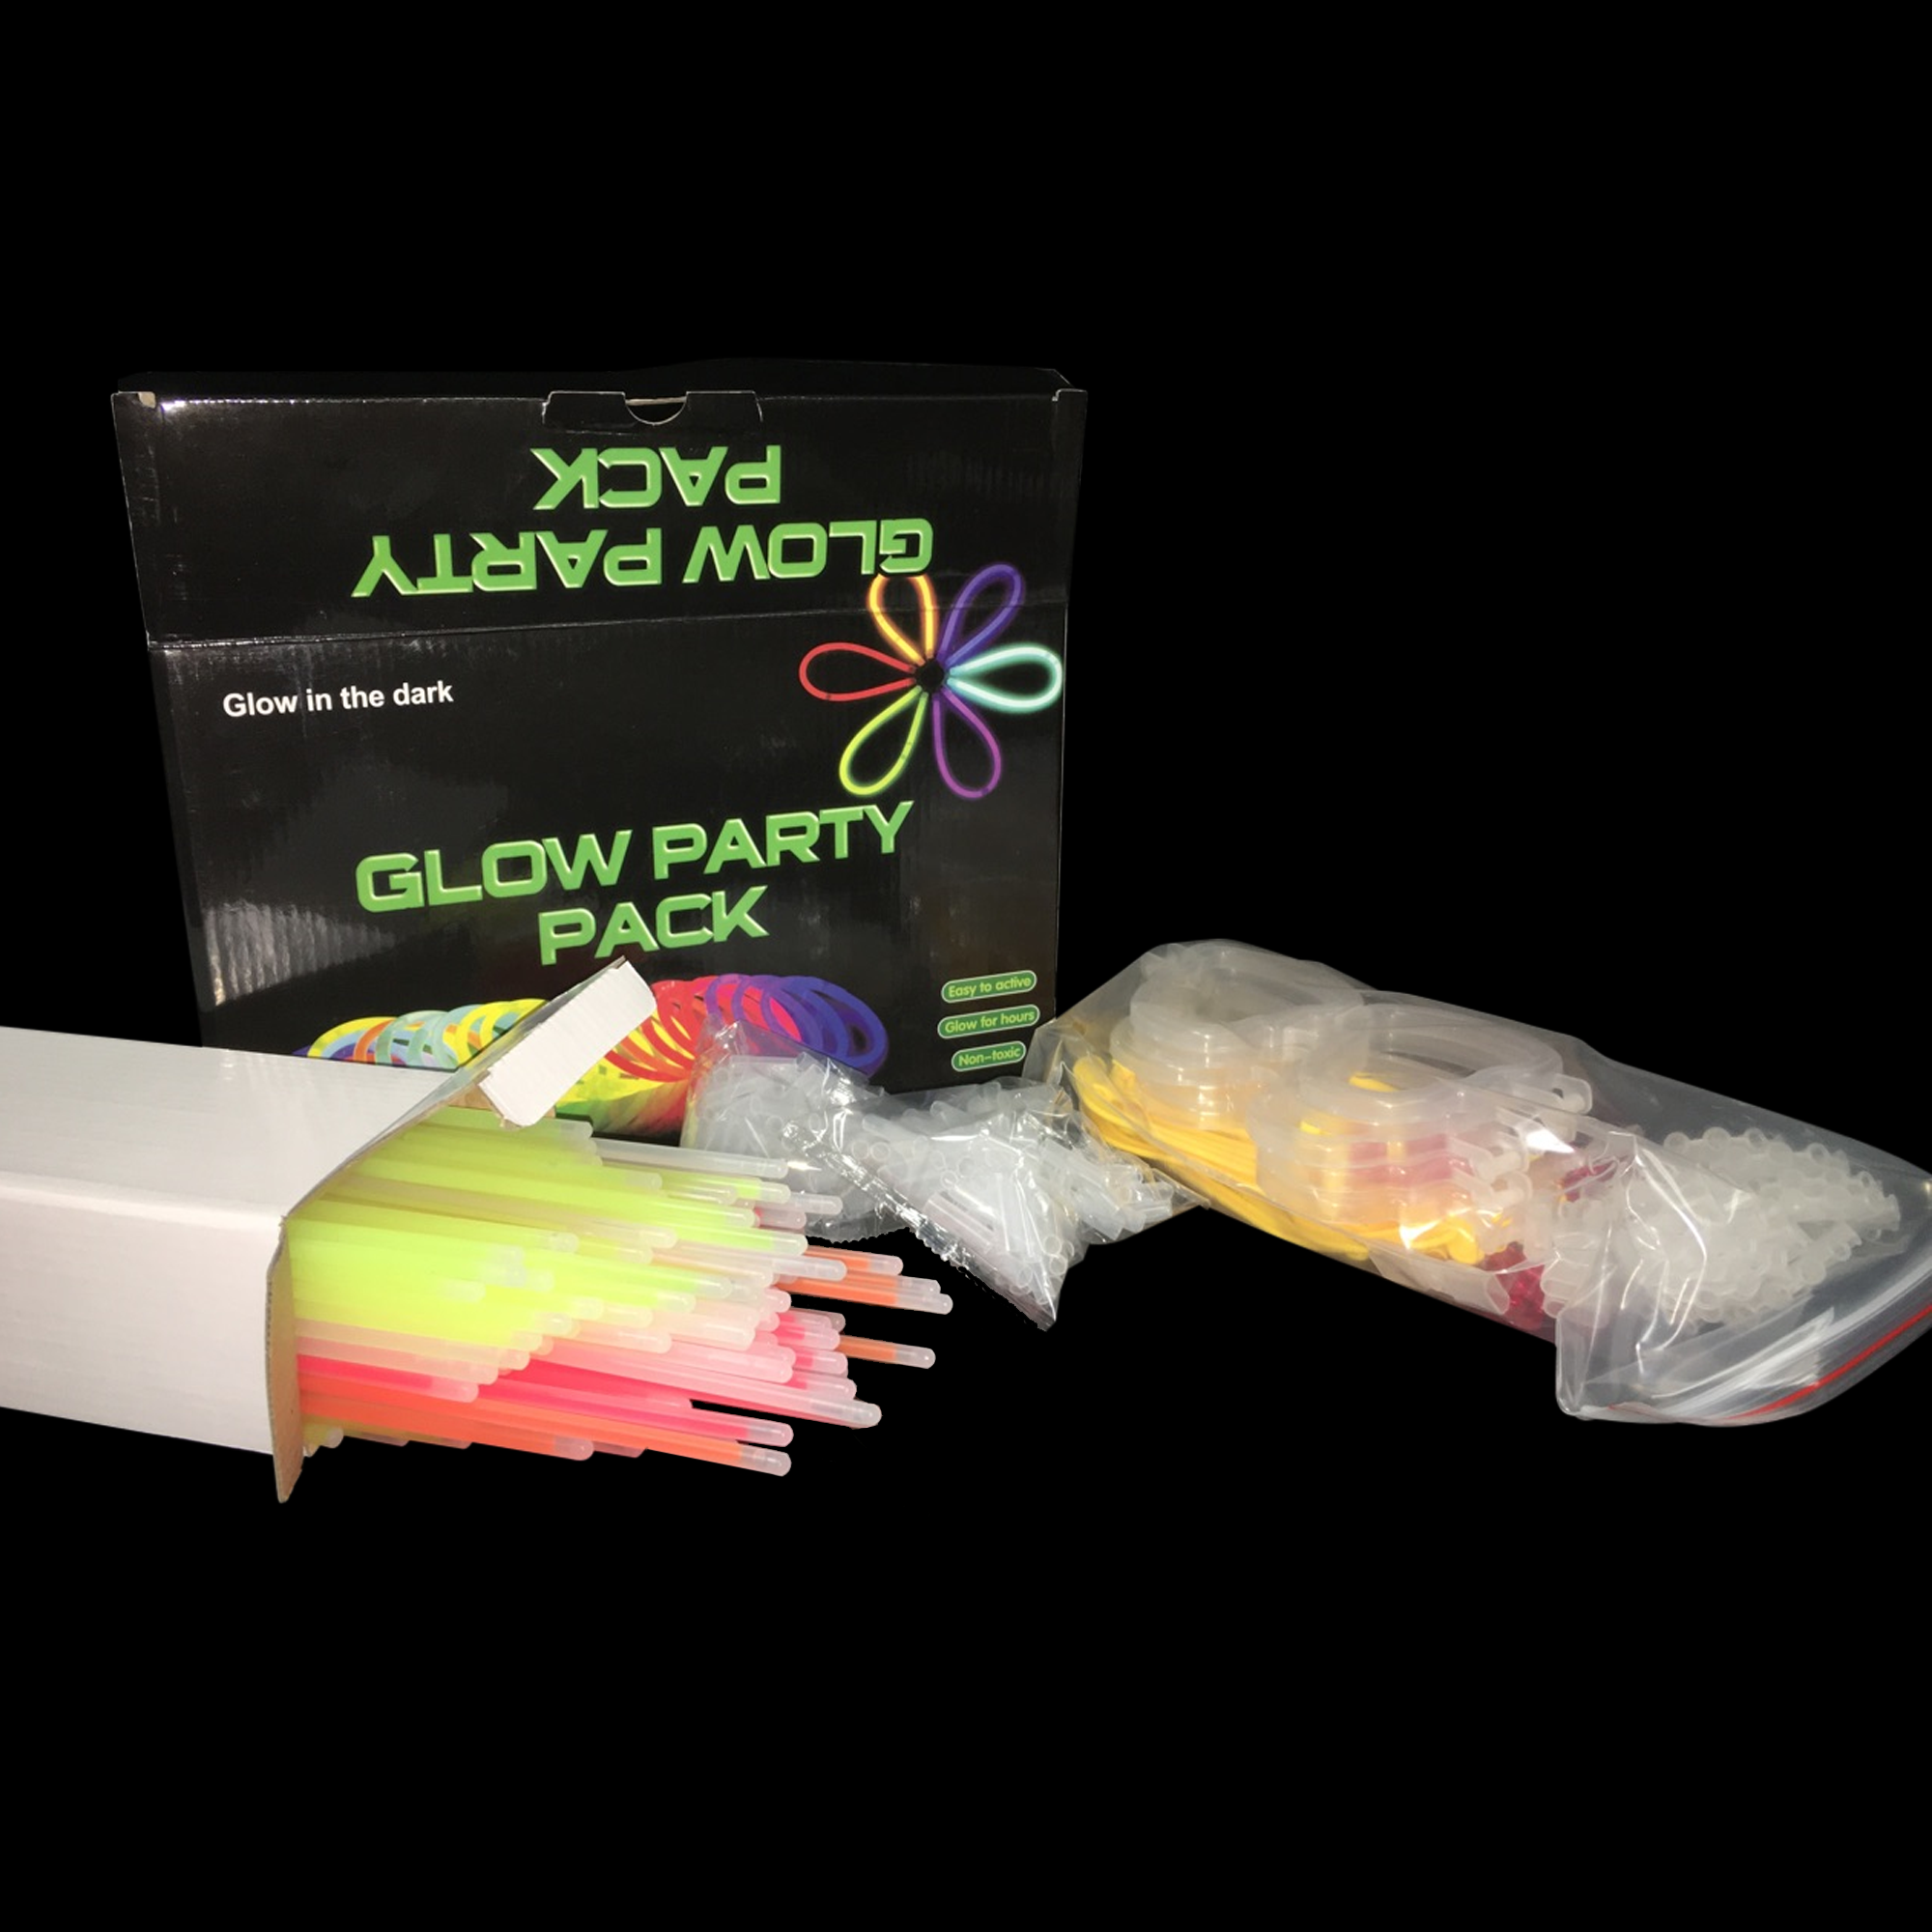 8 Inch Glow Party Pack - 100 Count Set